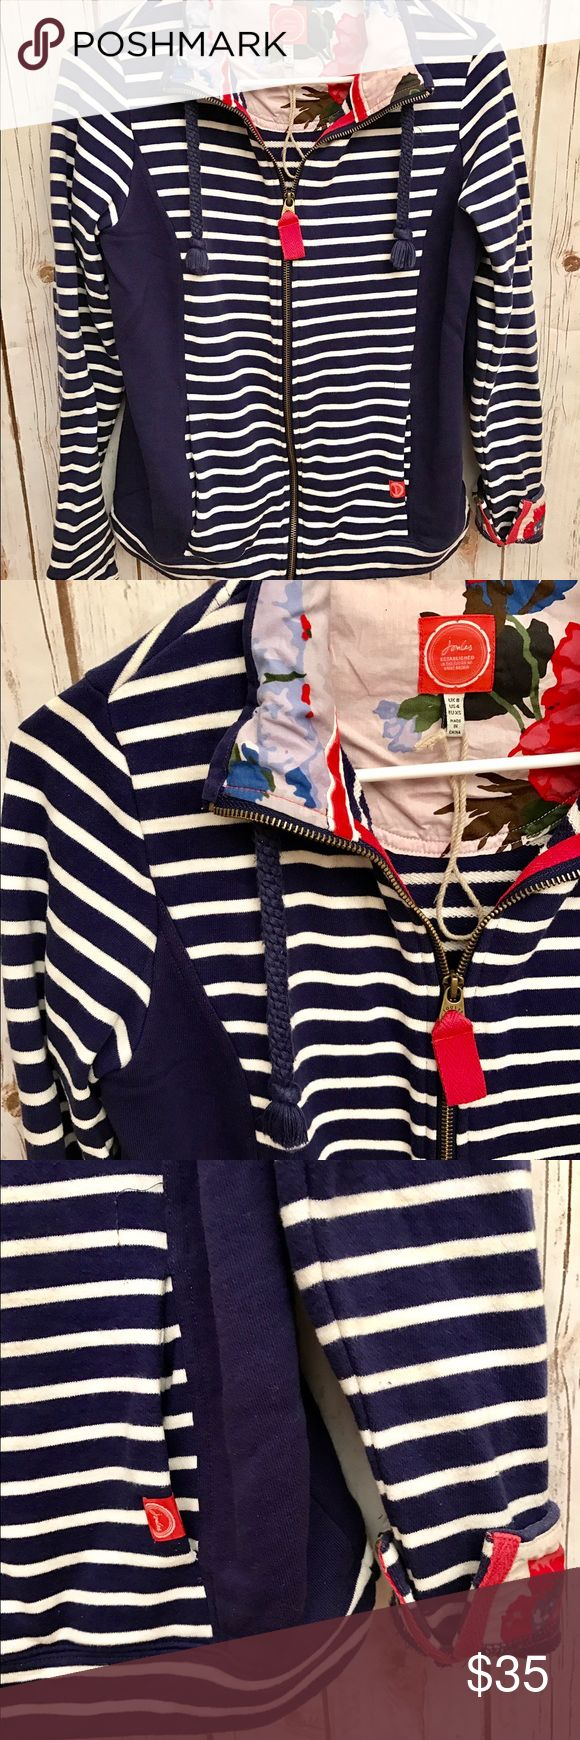 Joules Striped Jacket Adorable Navy and white striped zip up jacket. This jacket has an inner floral pattern and striped on the outside. Pockets on the side in the front and elbow pads on the back. European brand jacket in great preloved condition.  US size 4. Joules Jackets & Coats